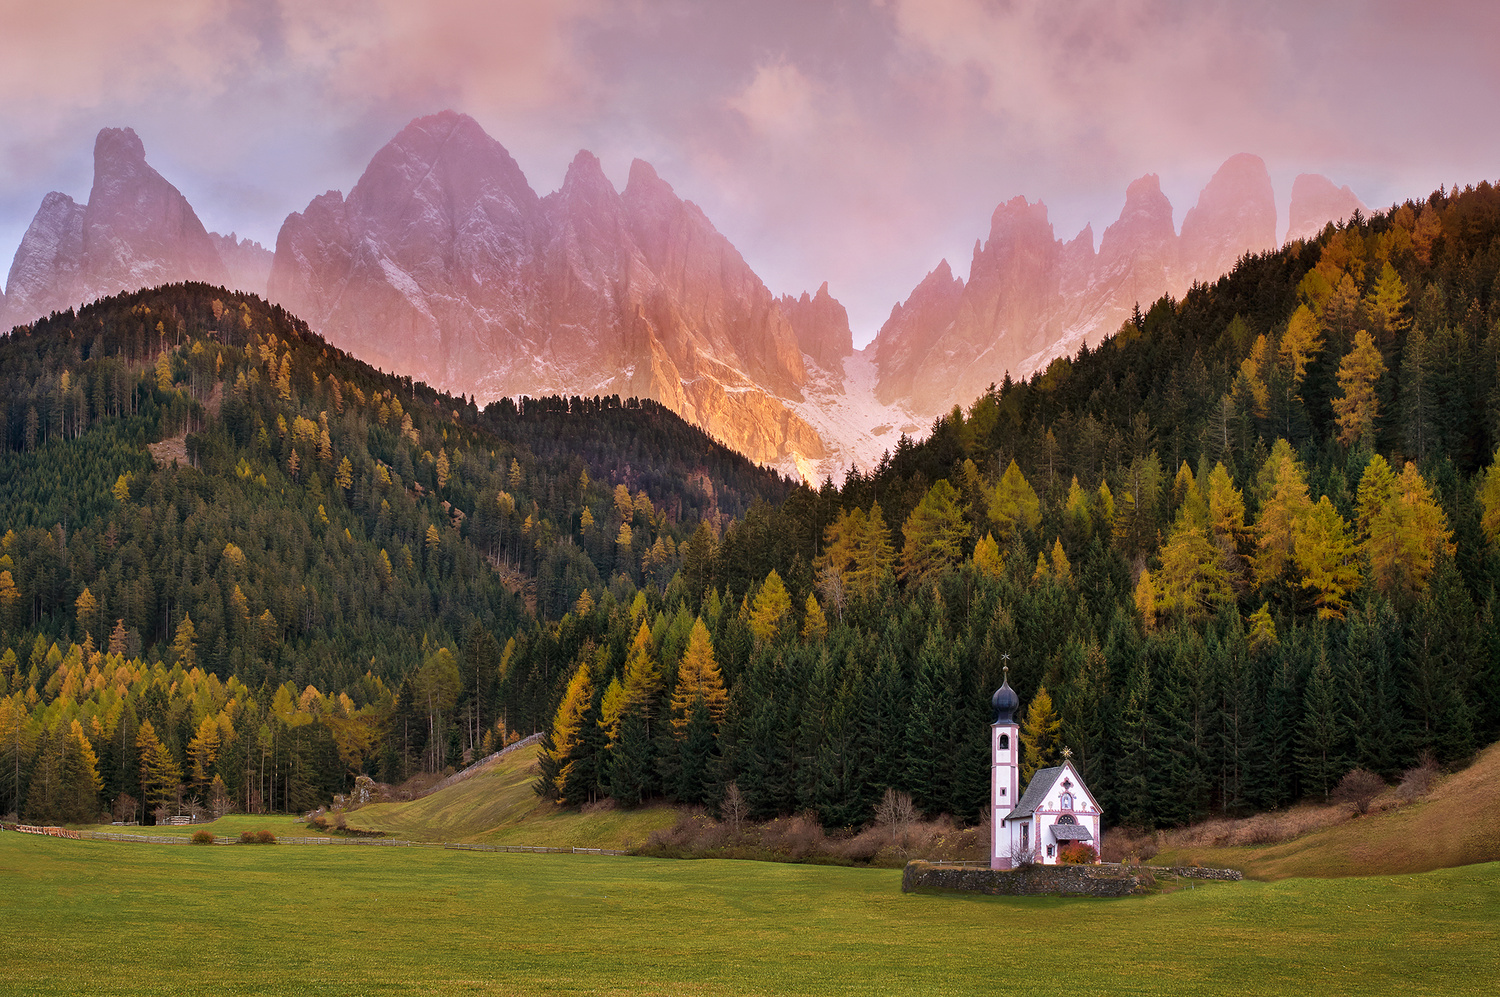 Dolomites sunset classic by Lionel Fellay